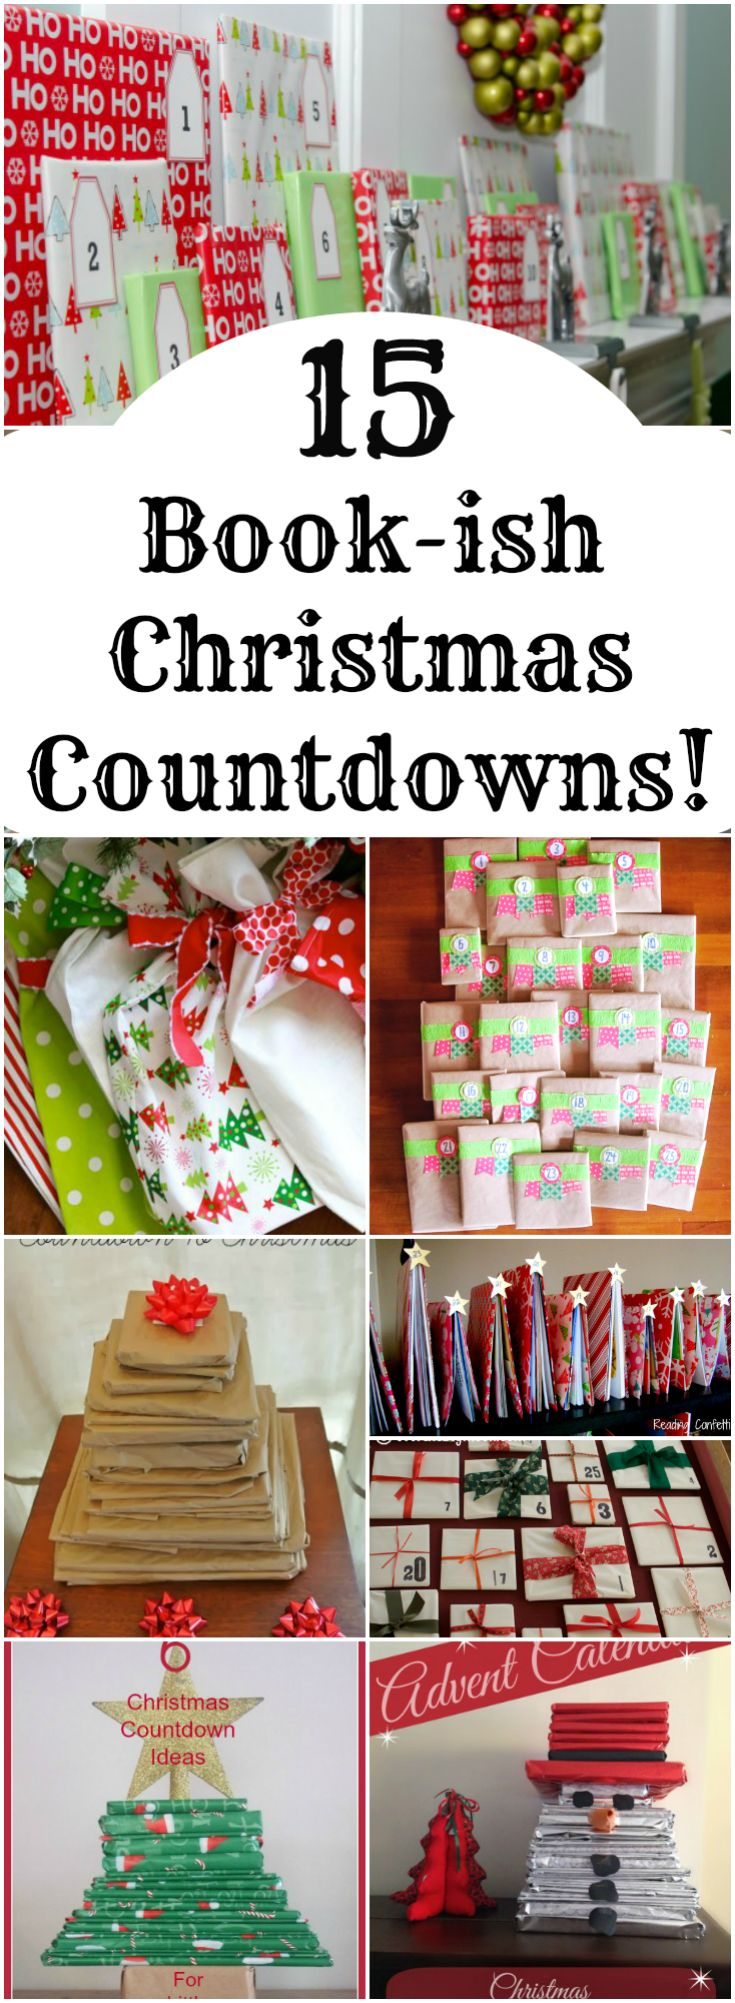 DIY Advent Calendar: 47 inspirational ideas 39